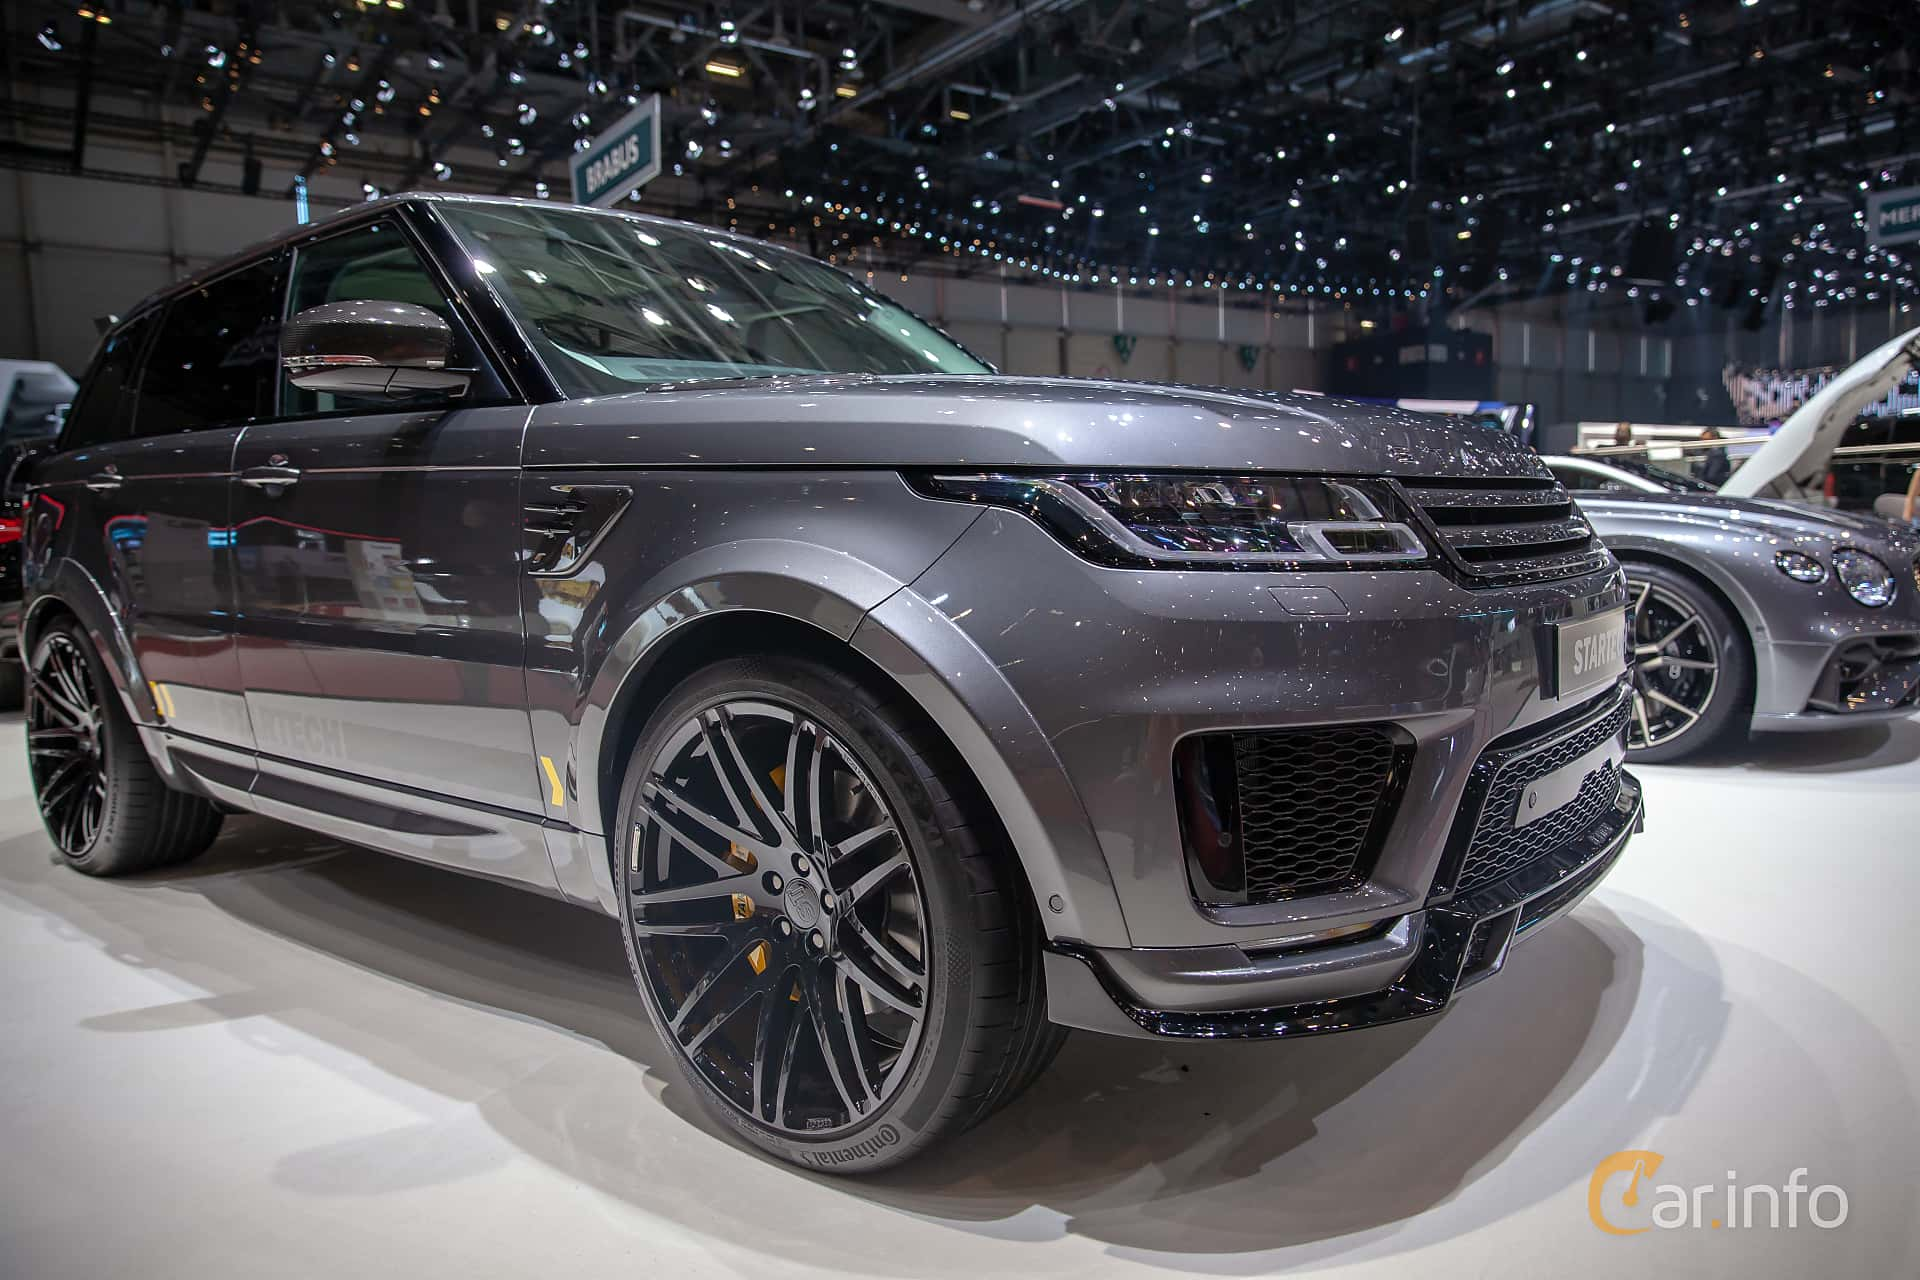 Front/Side  of STARTECH Range Rover Sport 5.0 V8 4WD Automatic, 525ps, 2019 at Geneva Motor Show 2019